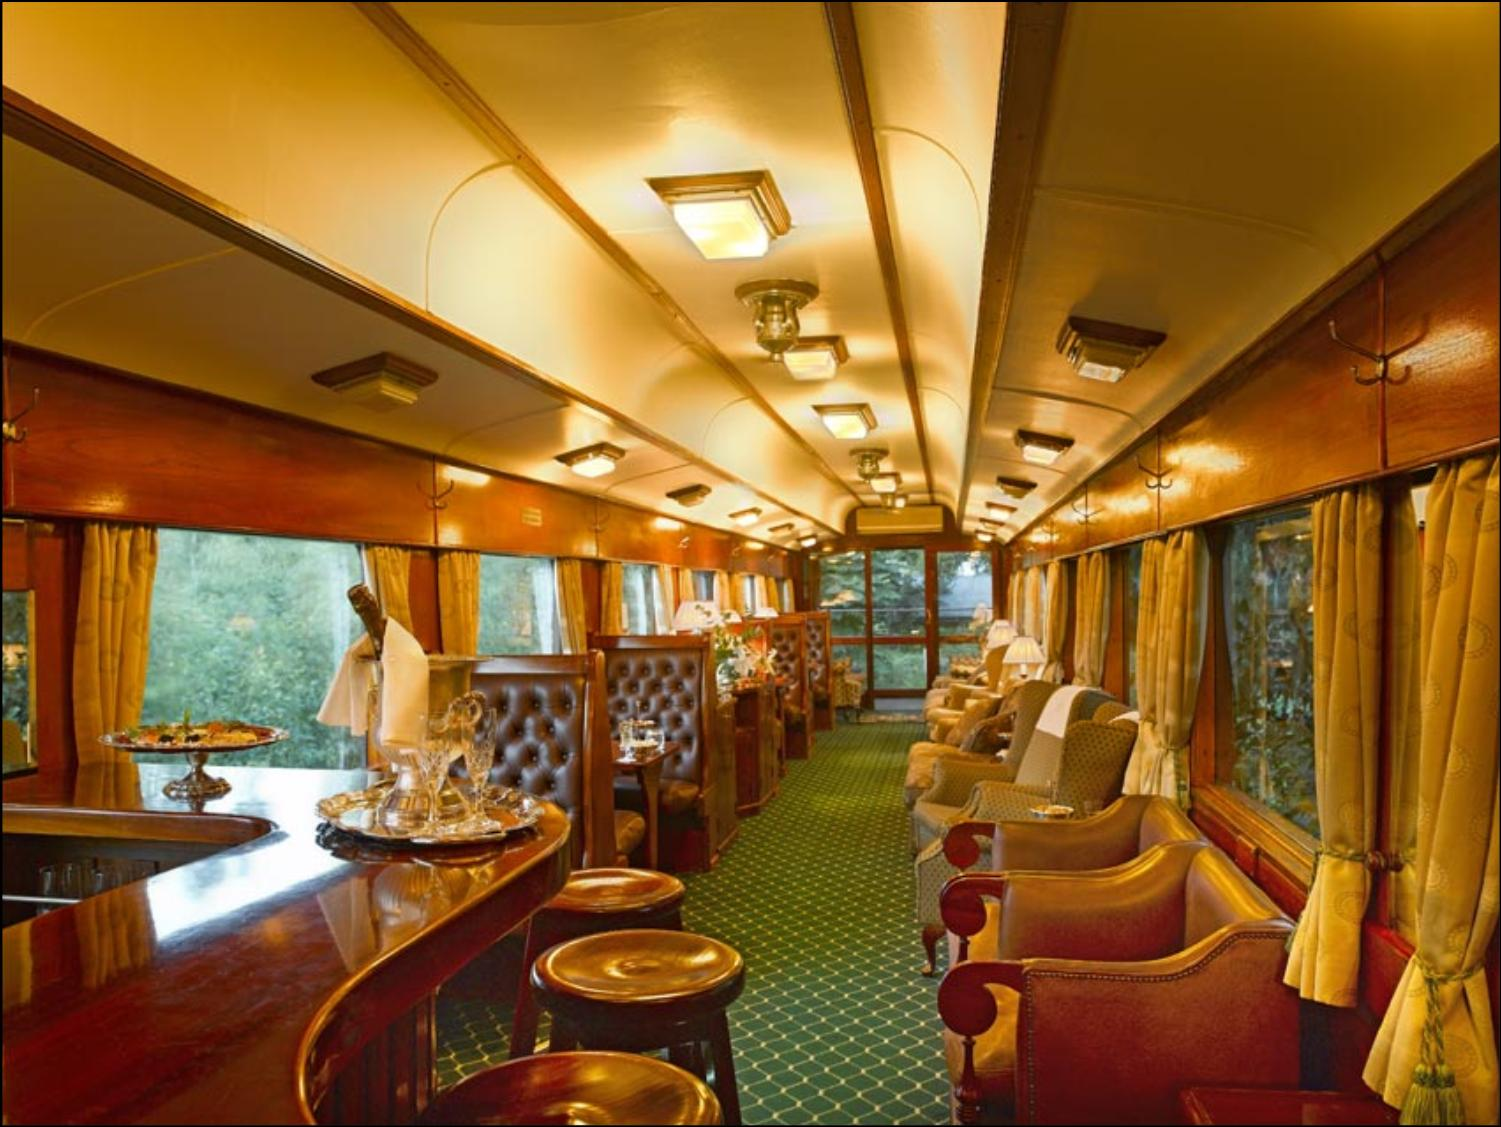 Luxury Train Travel At Its Best - Seriously Travel